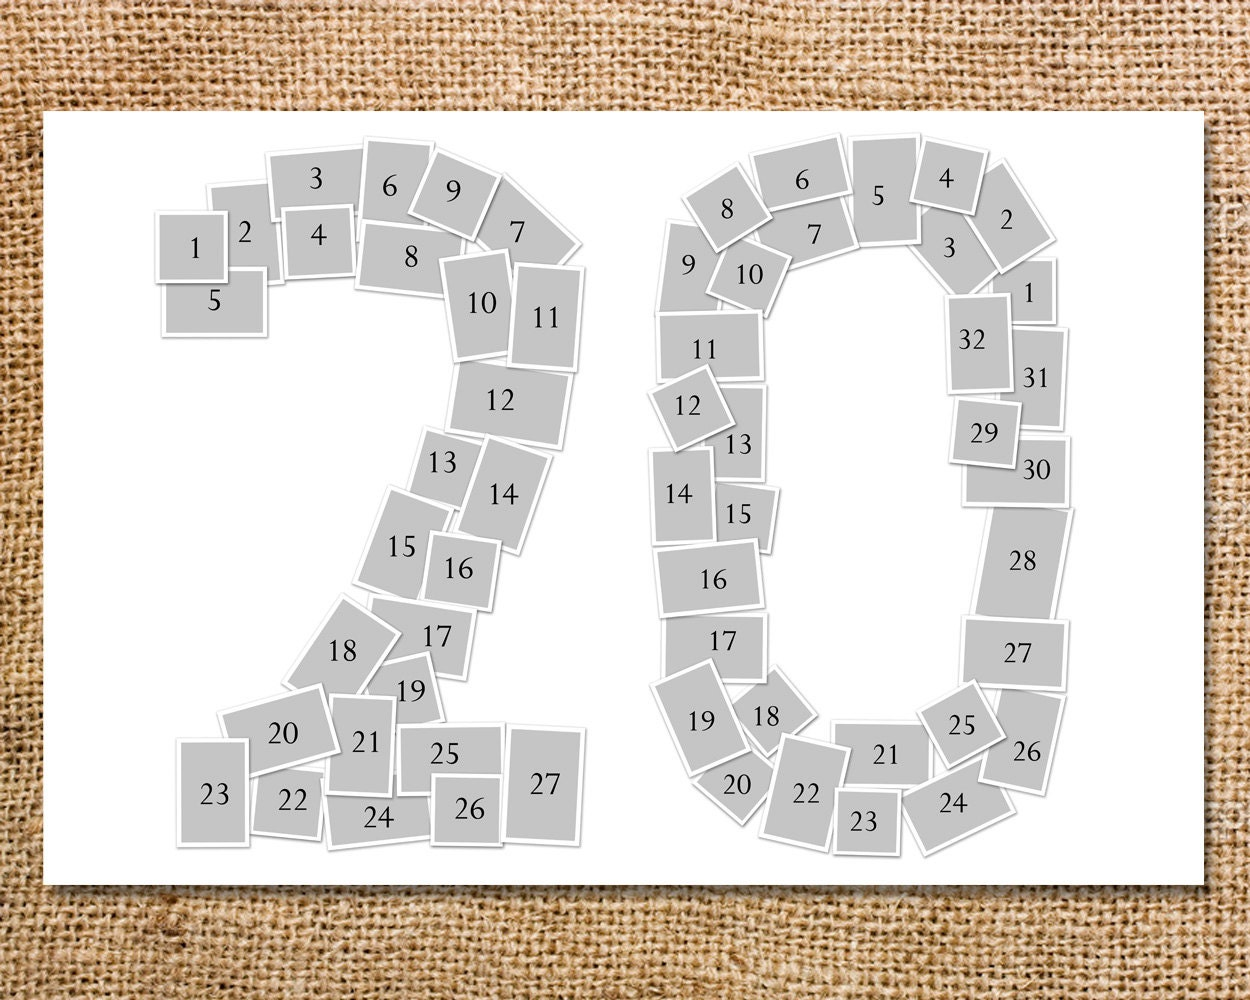 Double digit number photo collage printable 20 30 40 50 for Photo collage number templates